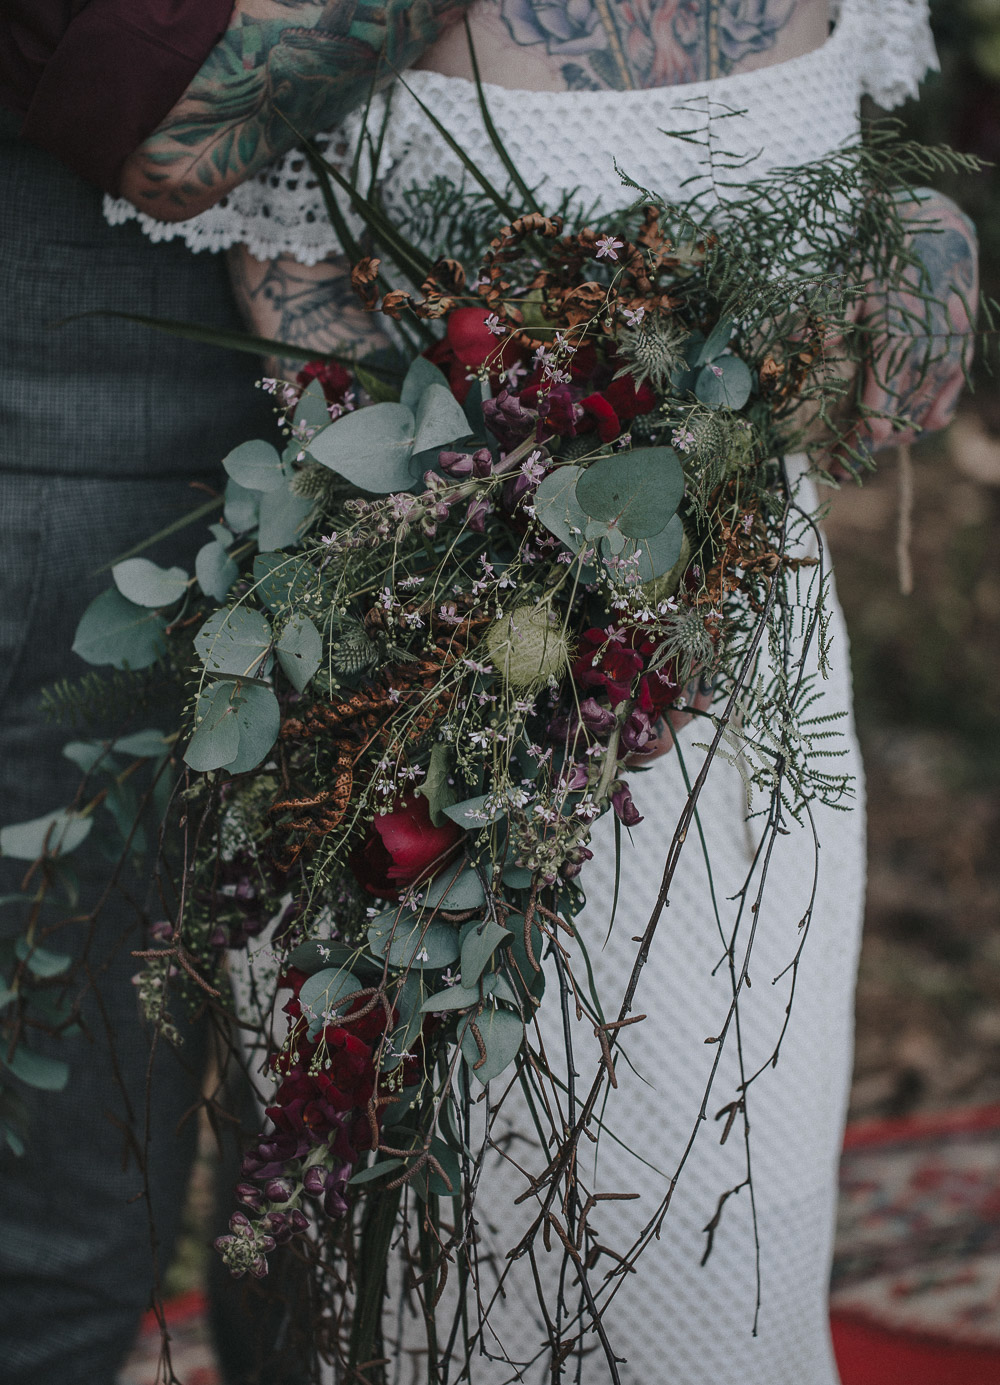 alternative bride, autumn wedding, bearded groom, bohemian wedding, Bridal shoot, candles, cool bride, daughters of simone, festival bride, forrest wedding, oudoor wedding, rock bride, rustic charm, sunset wedding, tattooed bride, tattooed groom, Wedding inspiration, woodland wedding